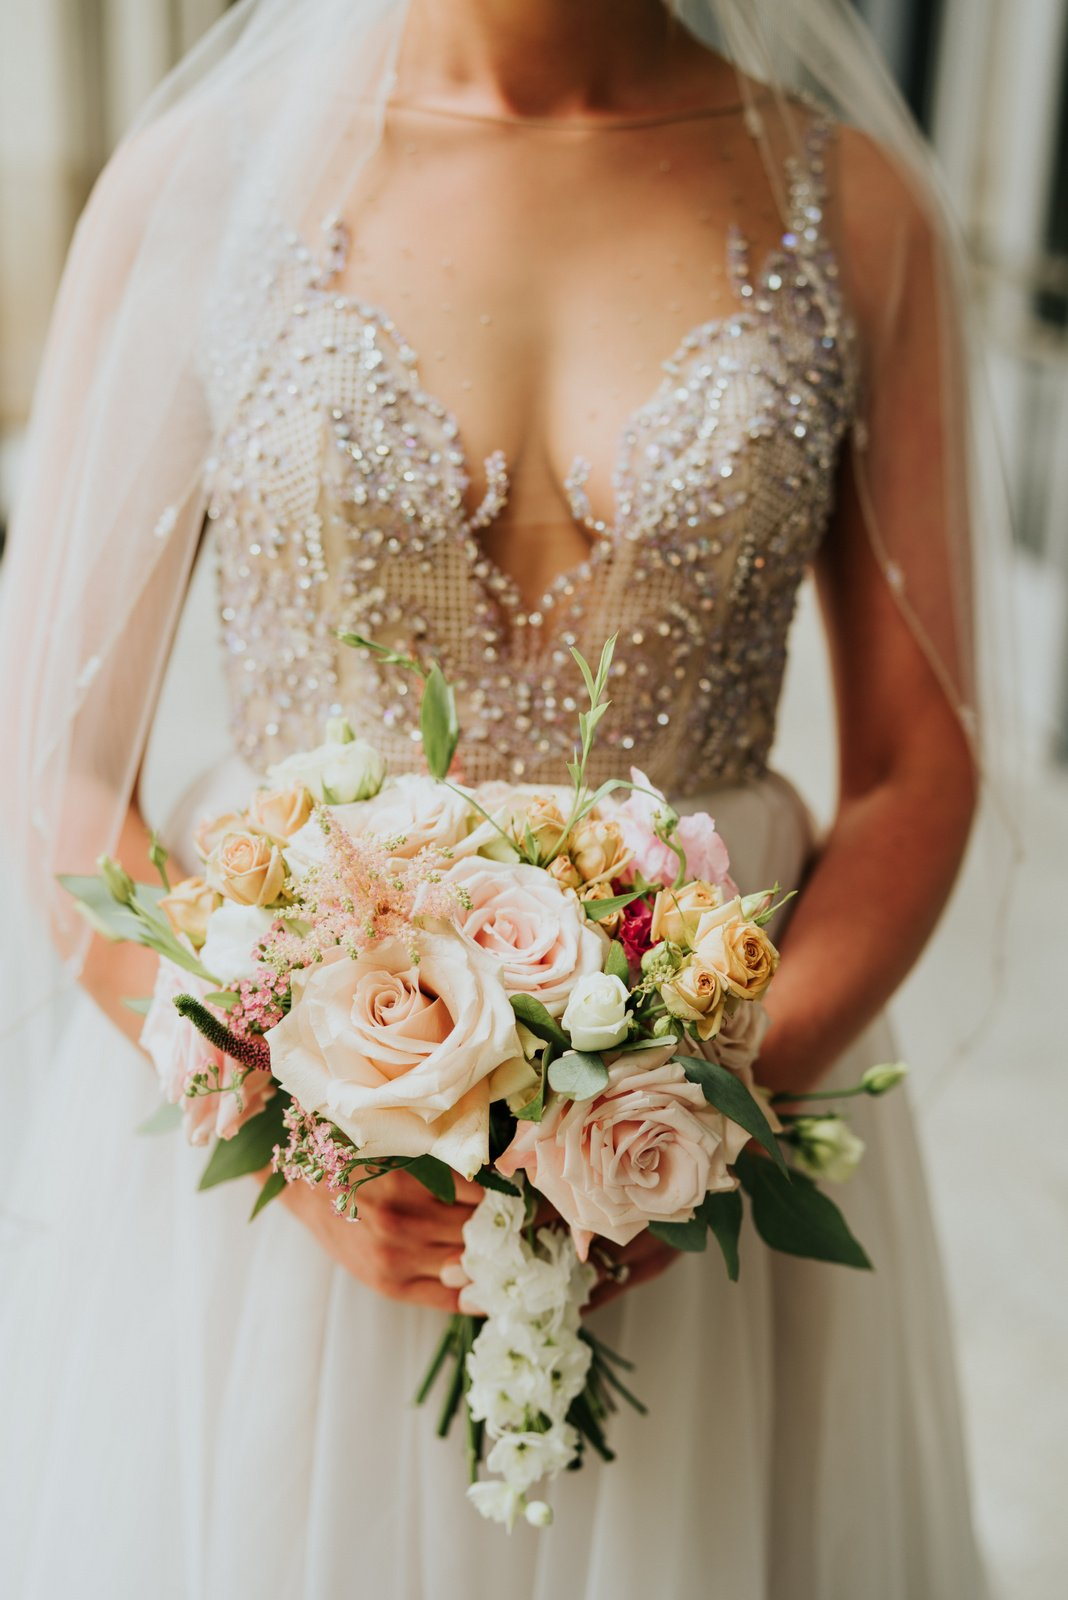 JS Weddings and Events, a Grand Rapids Wedding Planner and Floral Designer. A Moody Summer Romantic Wedding in Downtown Grand Rapids